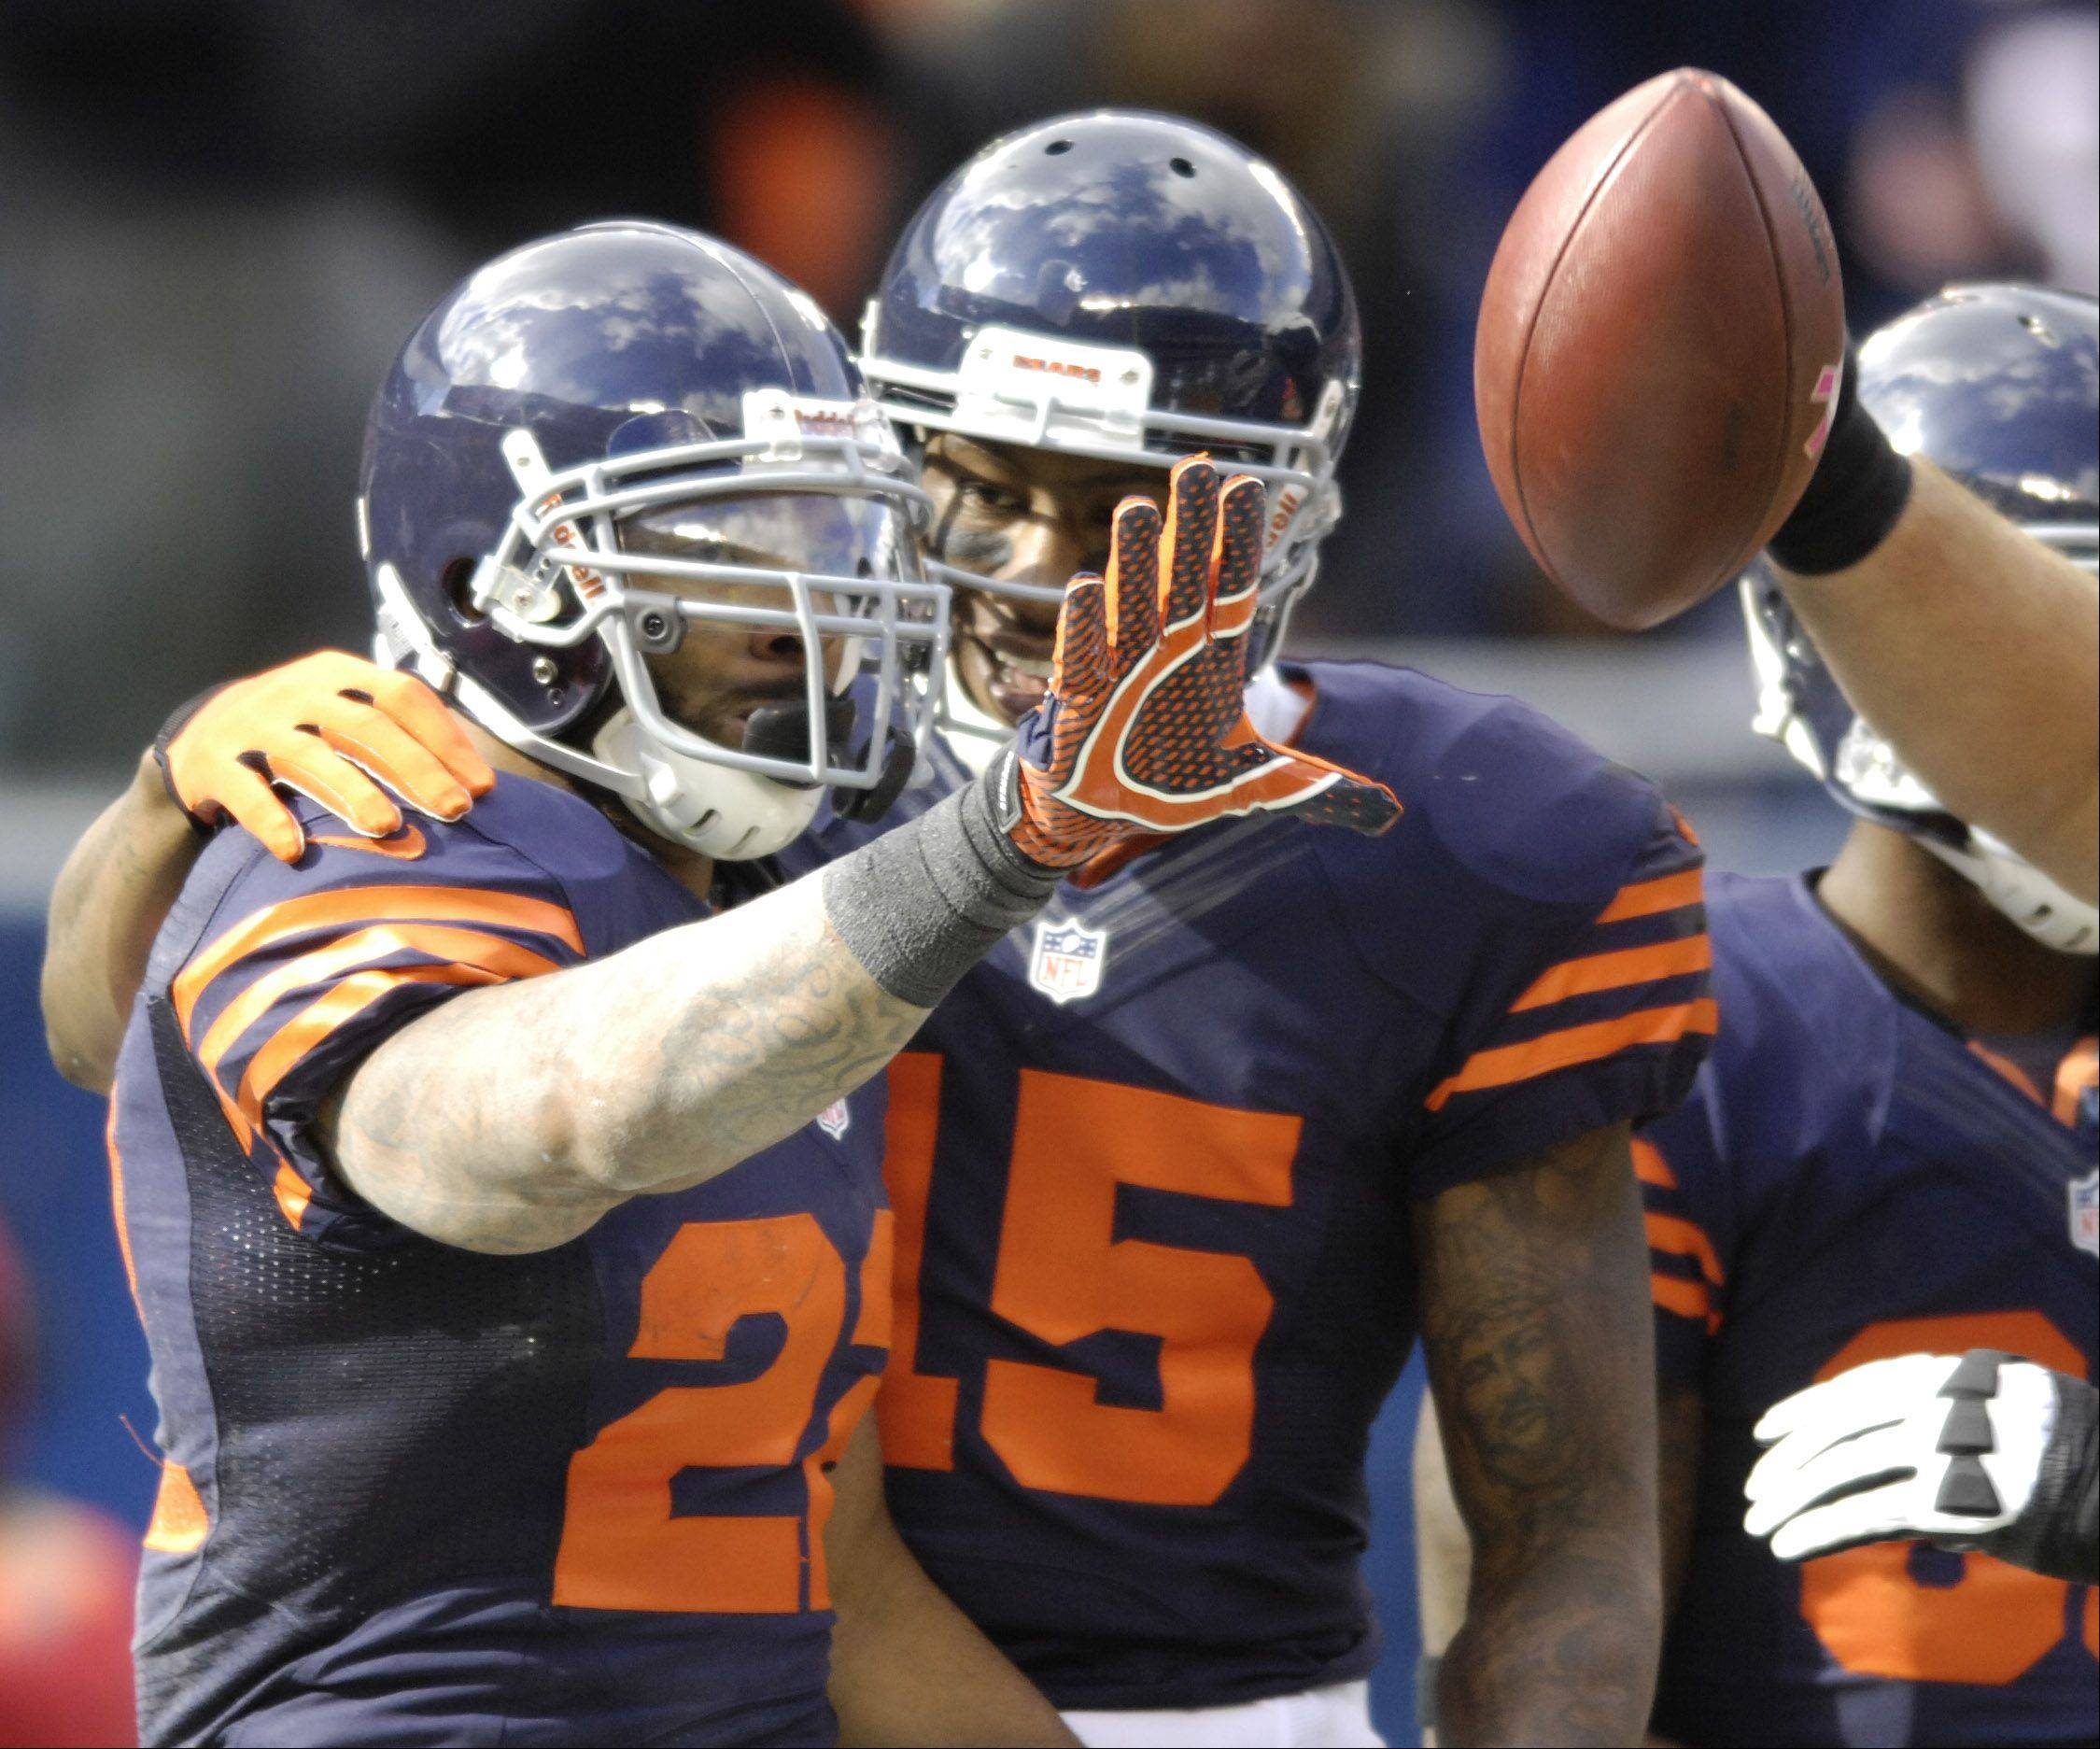 Chicago Bears running back Matt Forte left, celebrates his touchdown with Chicago Bears wide receiver Brandon Marshall during Sunday's game against the Carolina Panthers at Soldier Field.